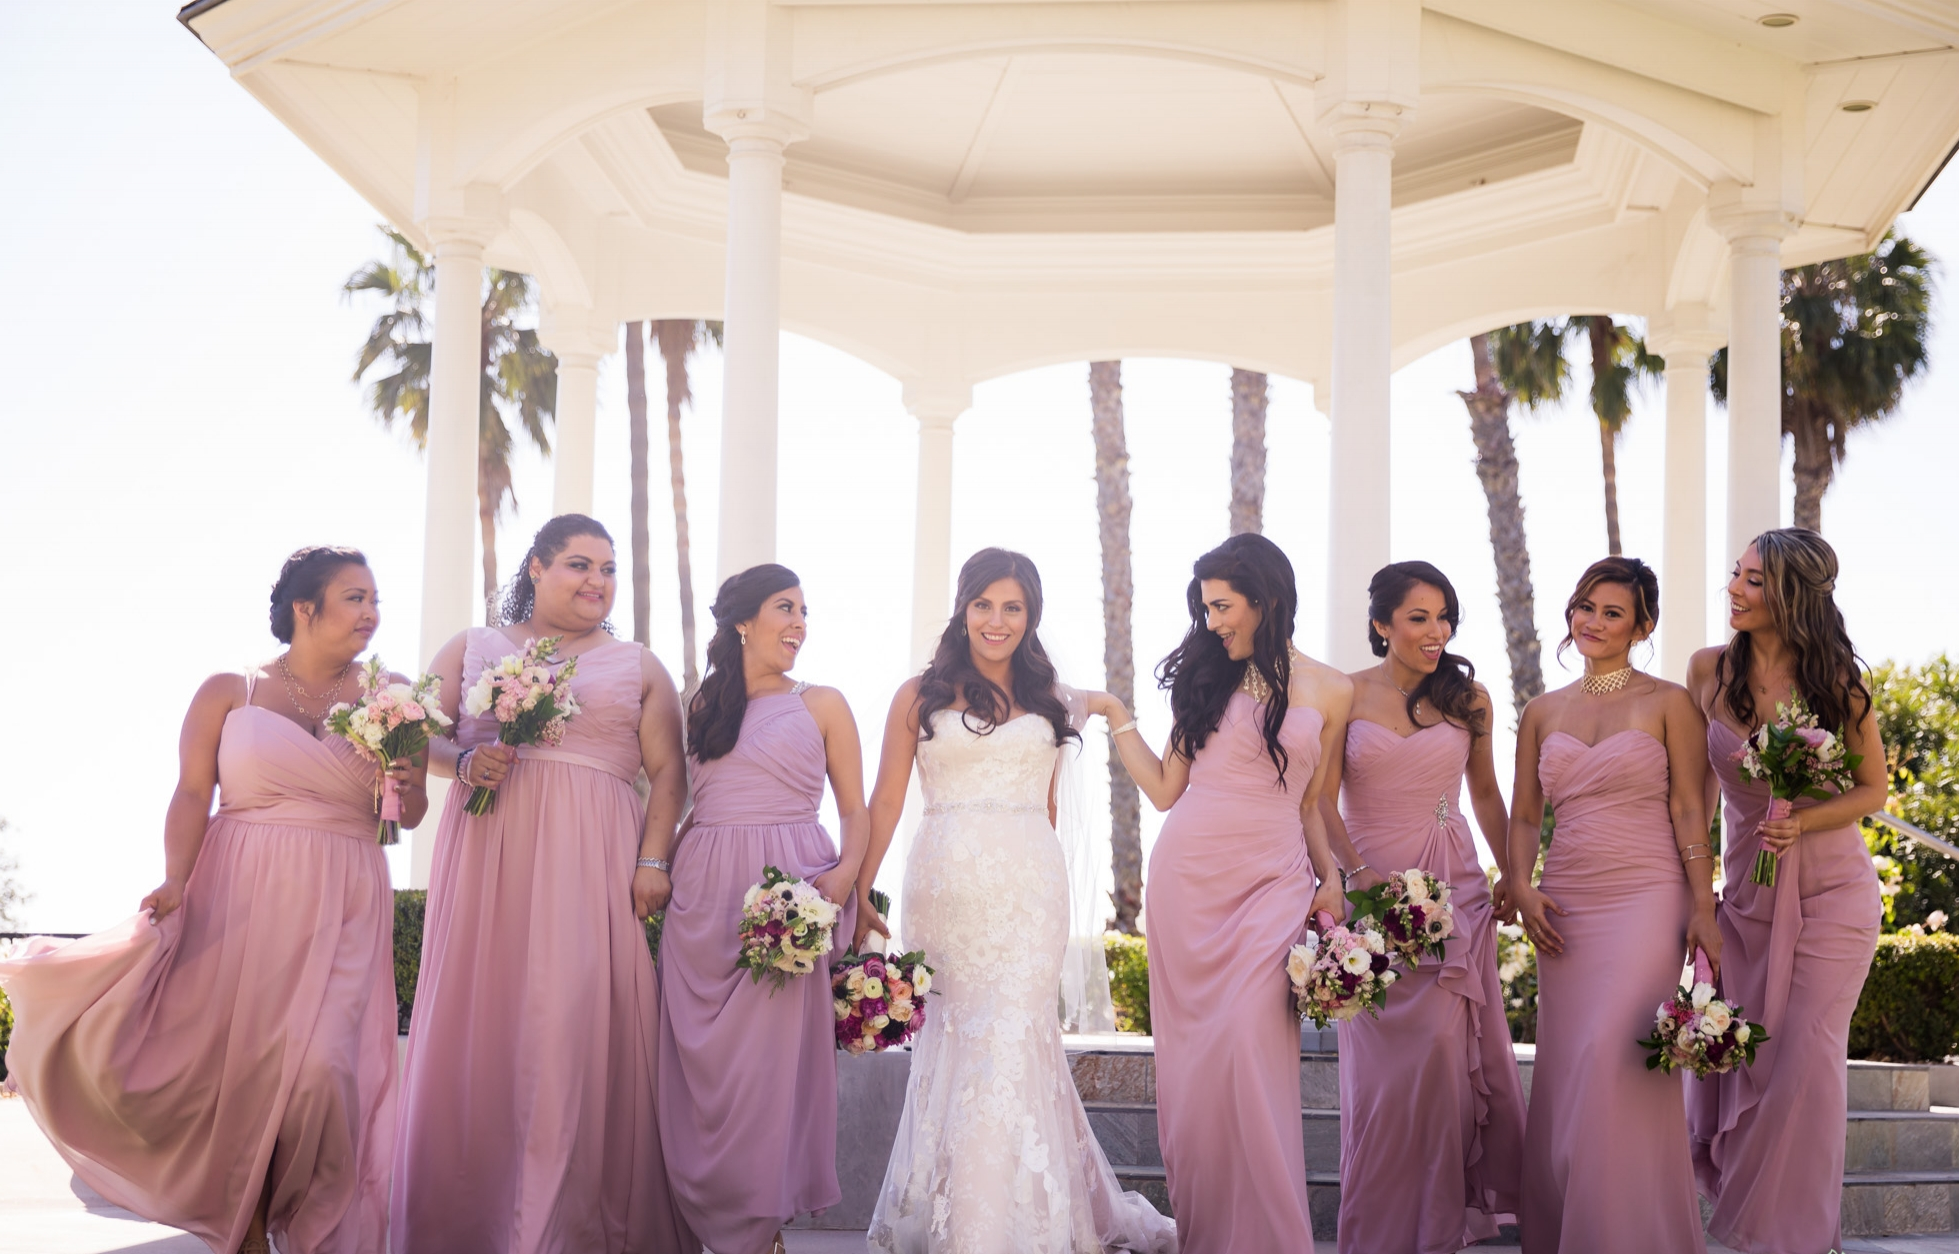 Multicultural Wedding with Bridal Party Posing in Pictures